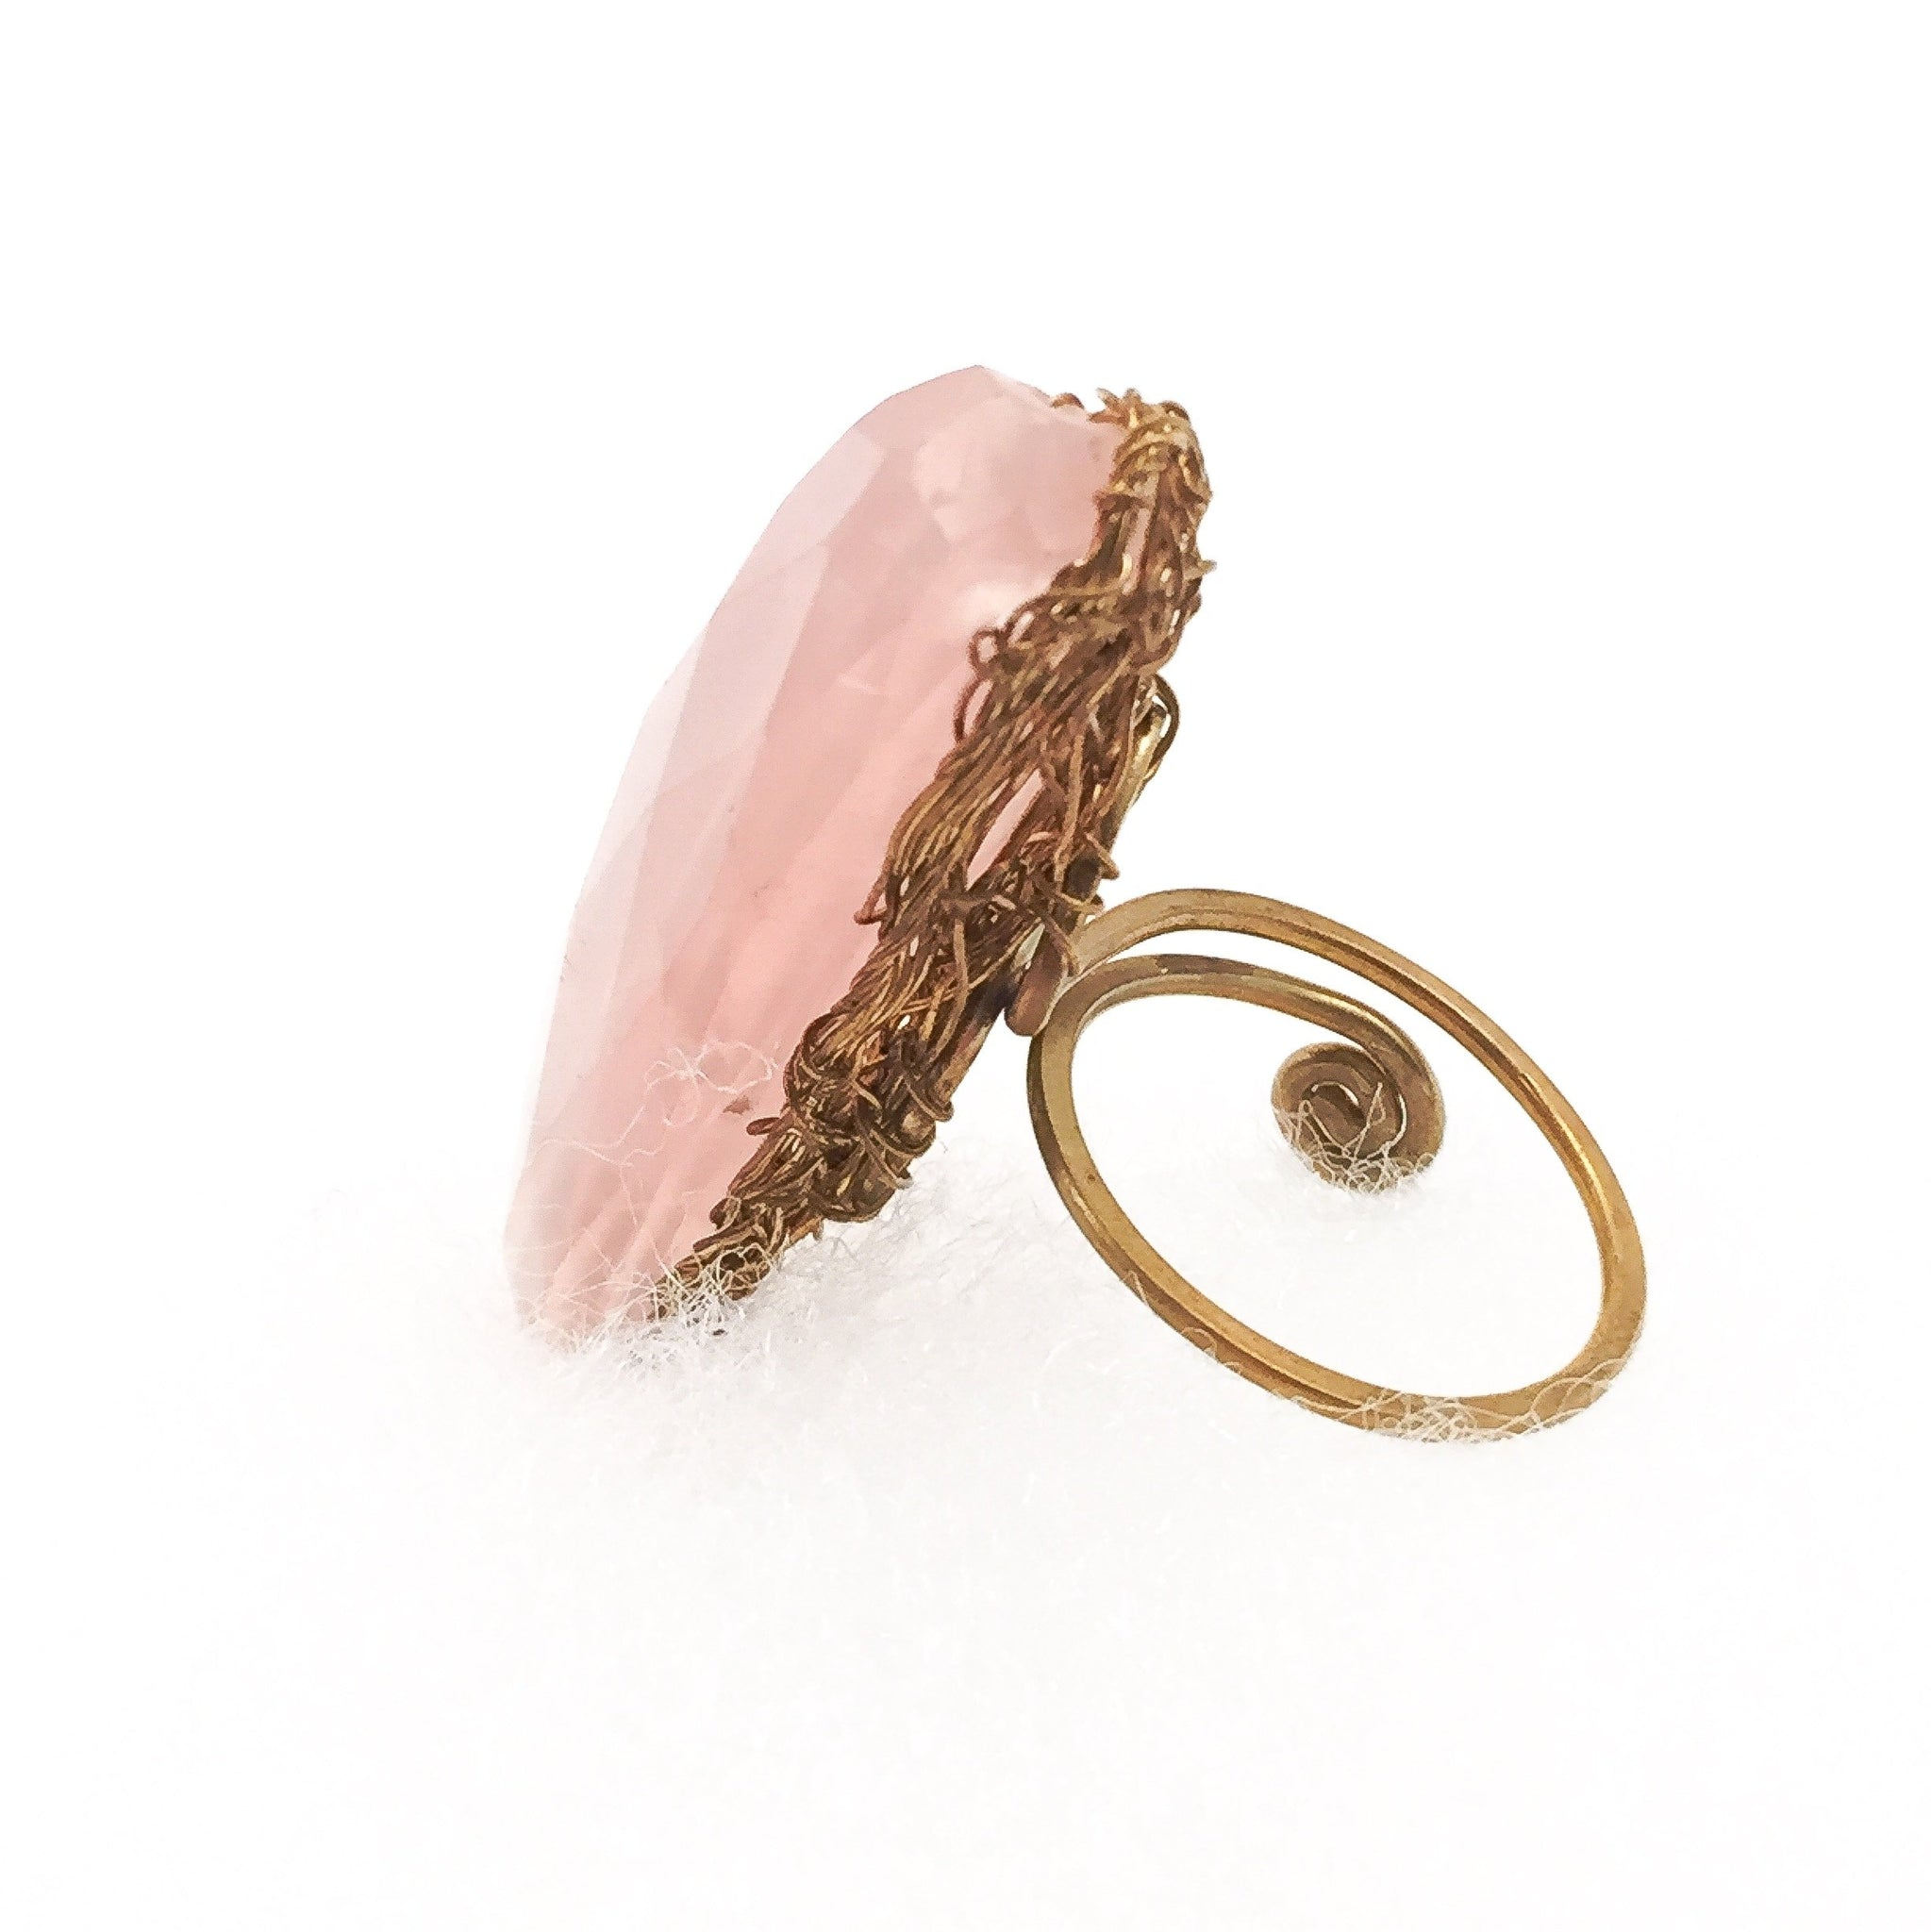 sterling silver eye quartz indonesia rings pink ring single rose bali stone in novica p from